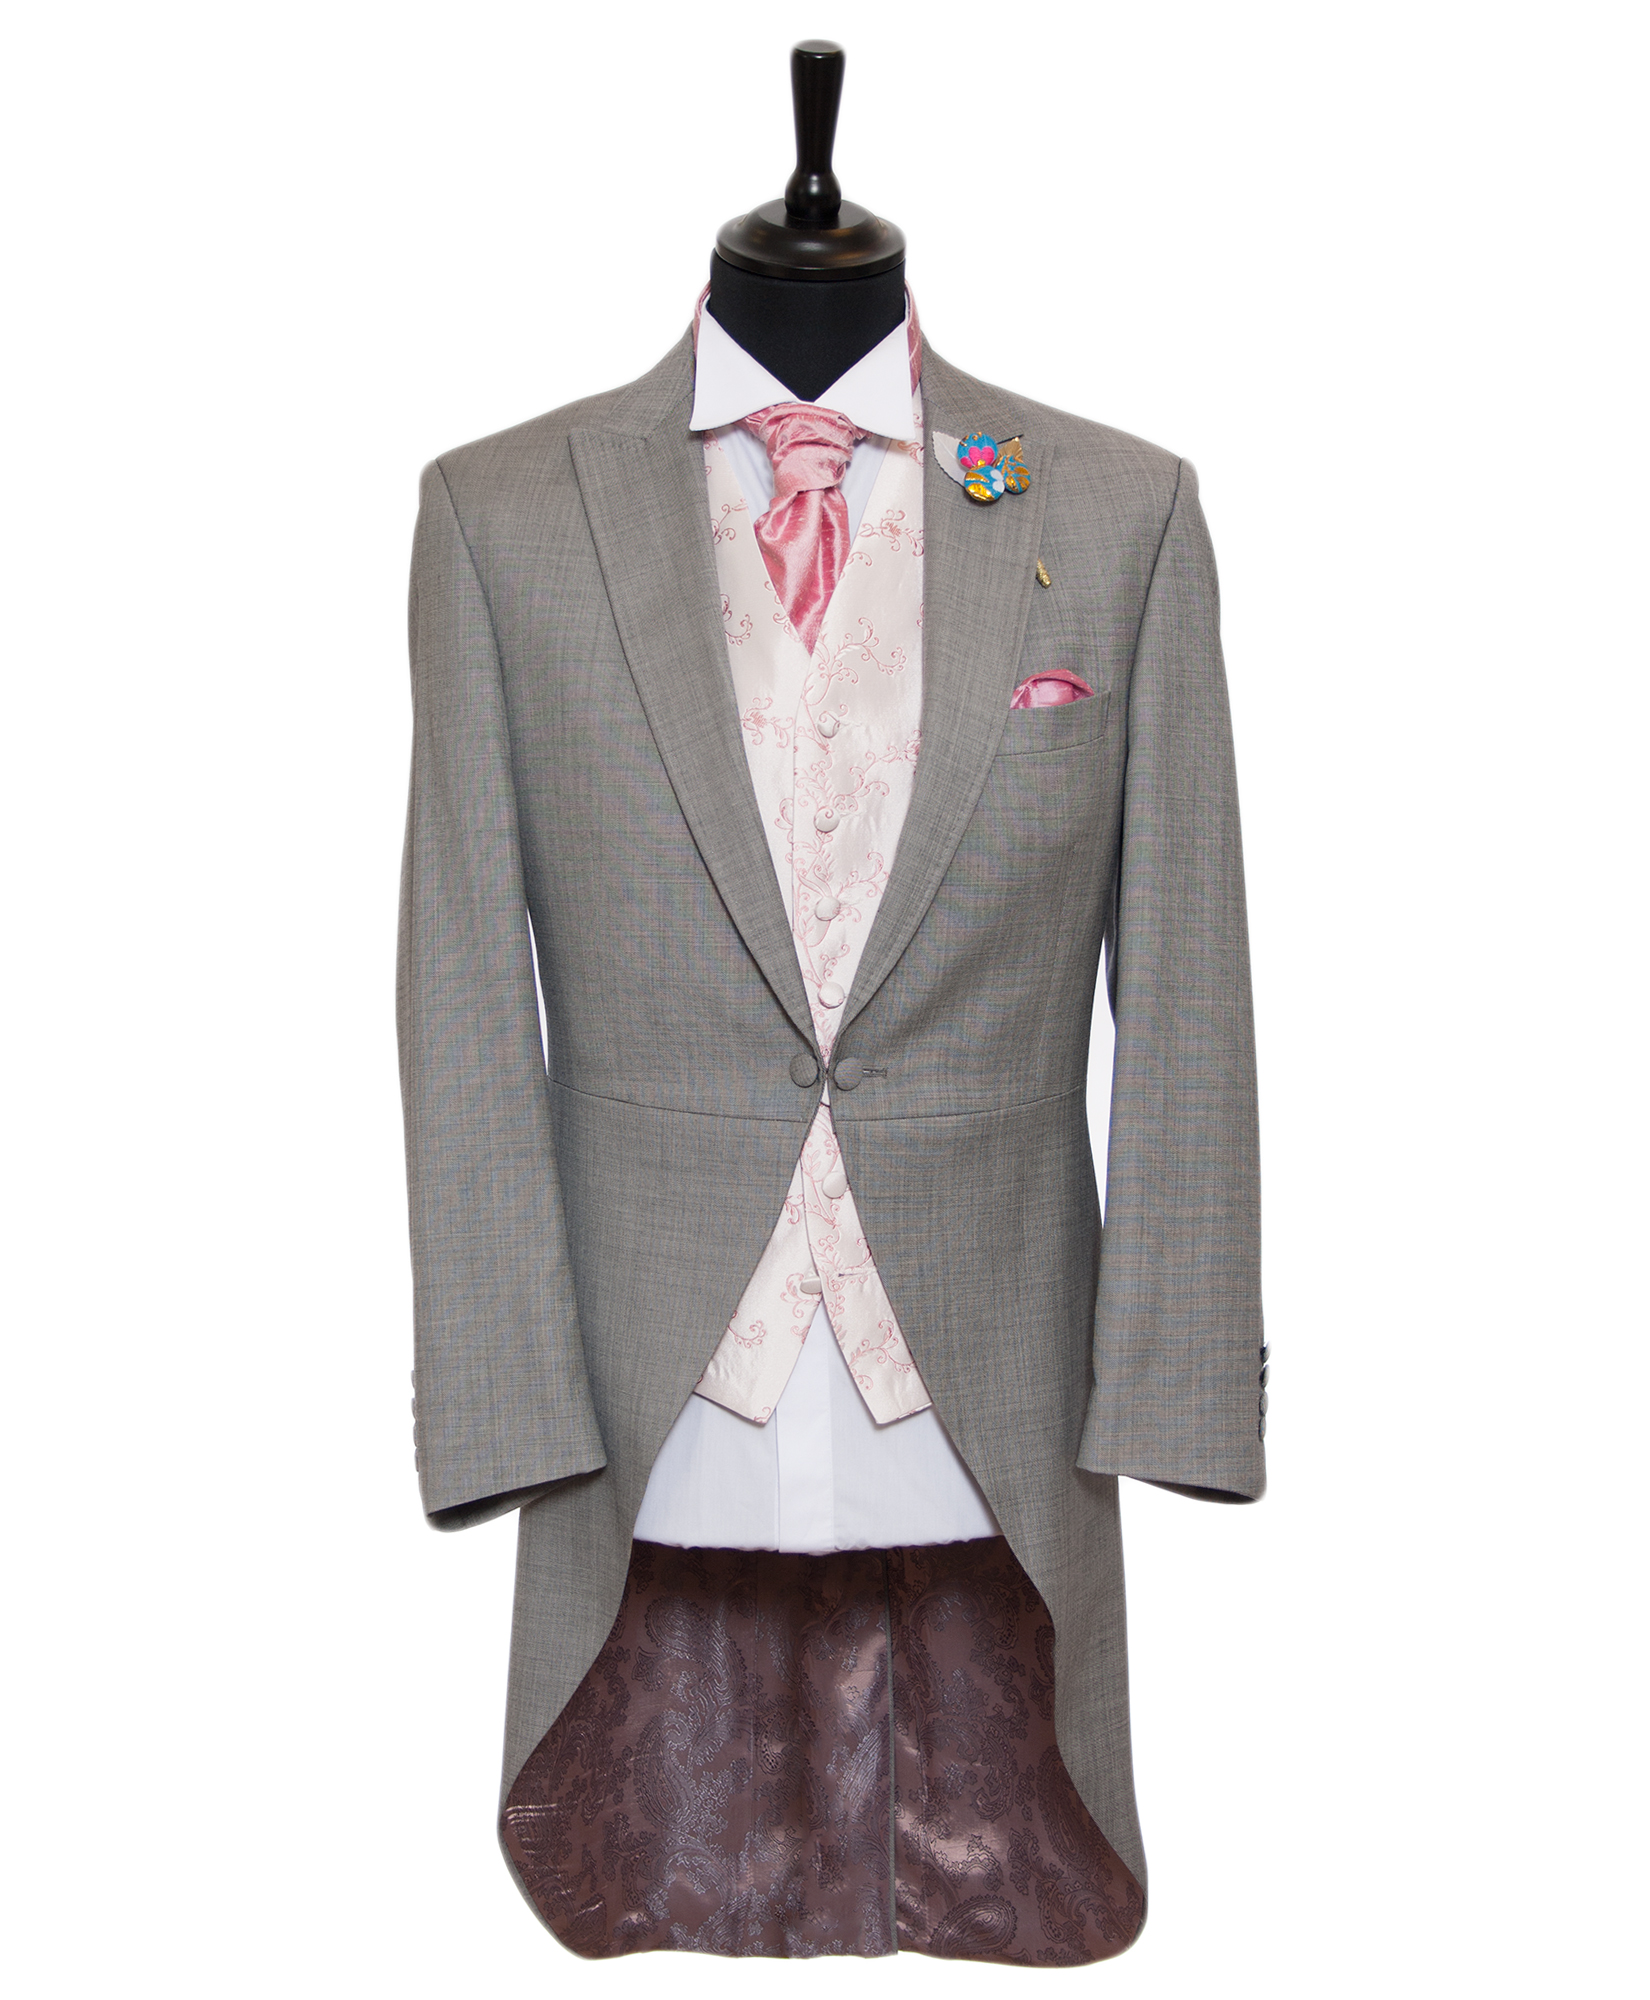 01_ascot grey cavendish morning suit.jpg: 5744 bytes